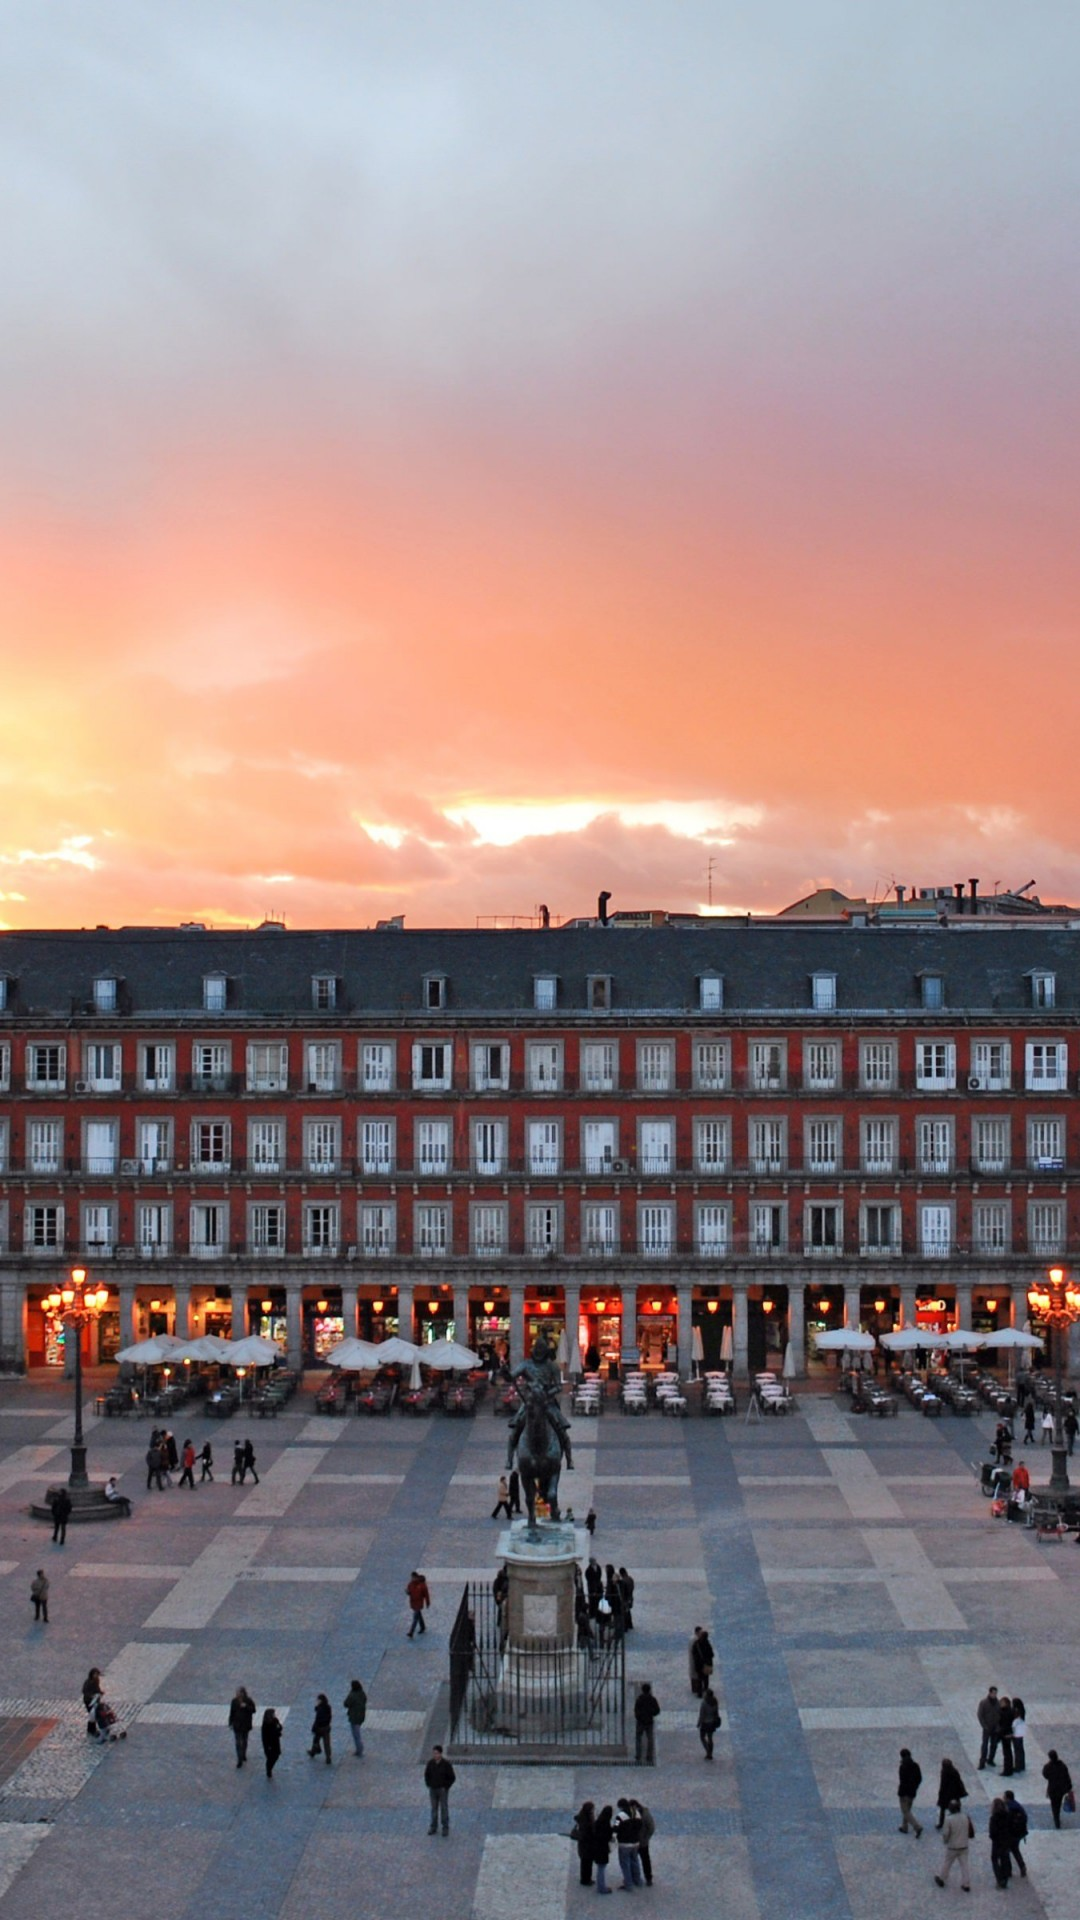 Plaza Mayor, Madrid, Spain Wallpaper for SAMSUNG Galaxy Note 3